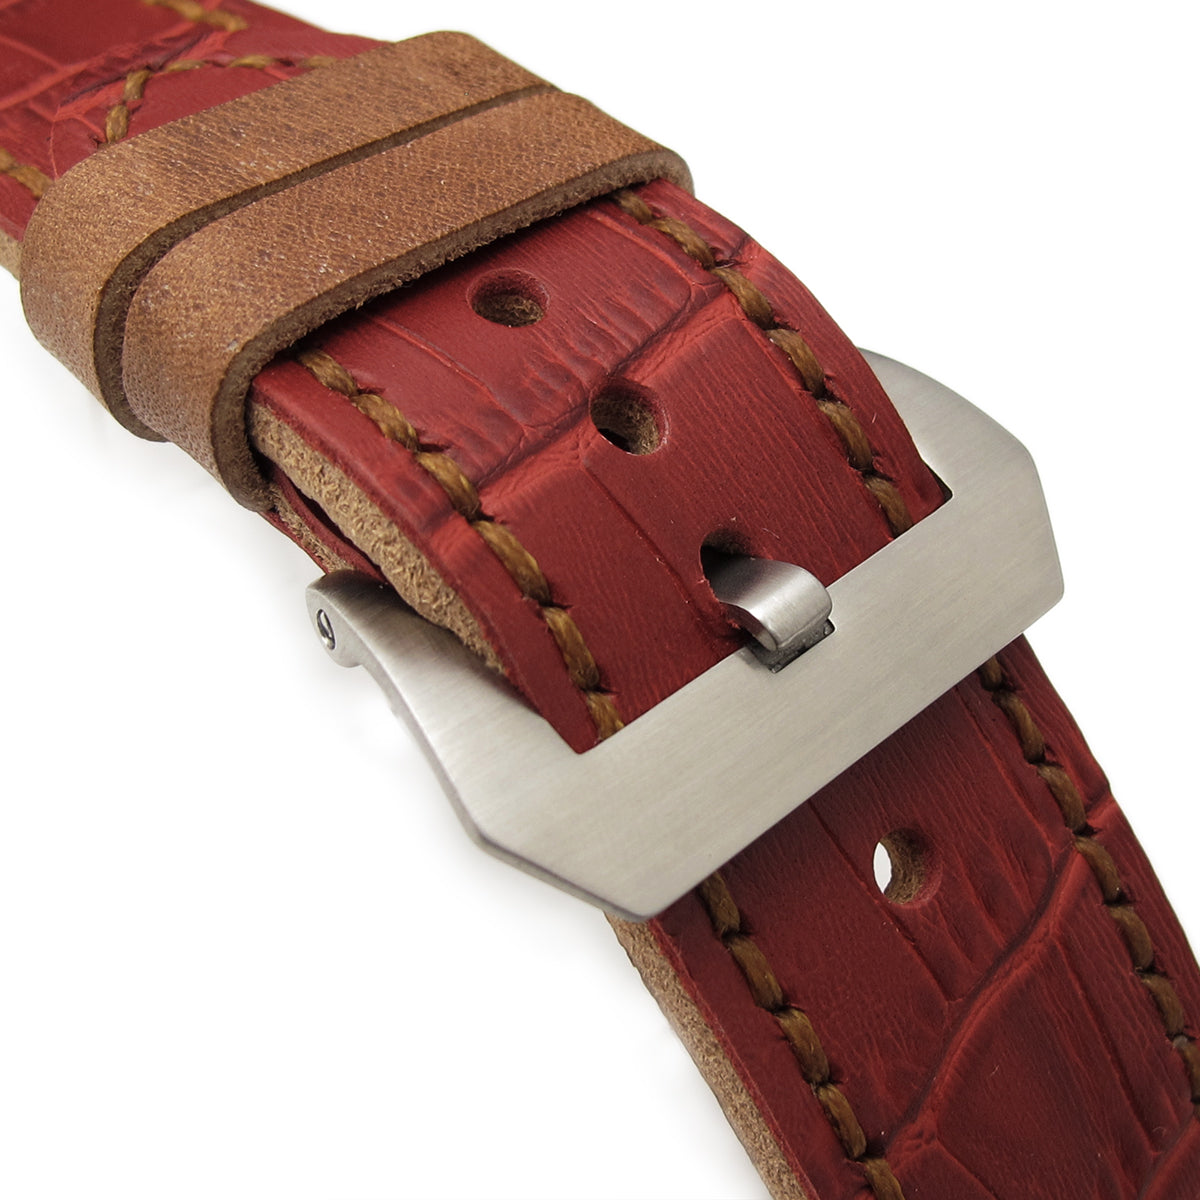 26mm MiLTAT Antipode Watch Strap Matte Red CrocoCalf in Tan Hand Stitches Strapcode Watch Bands